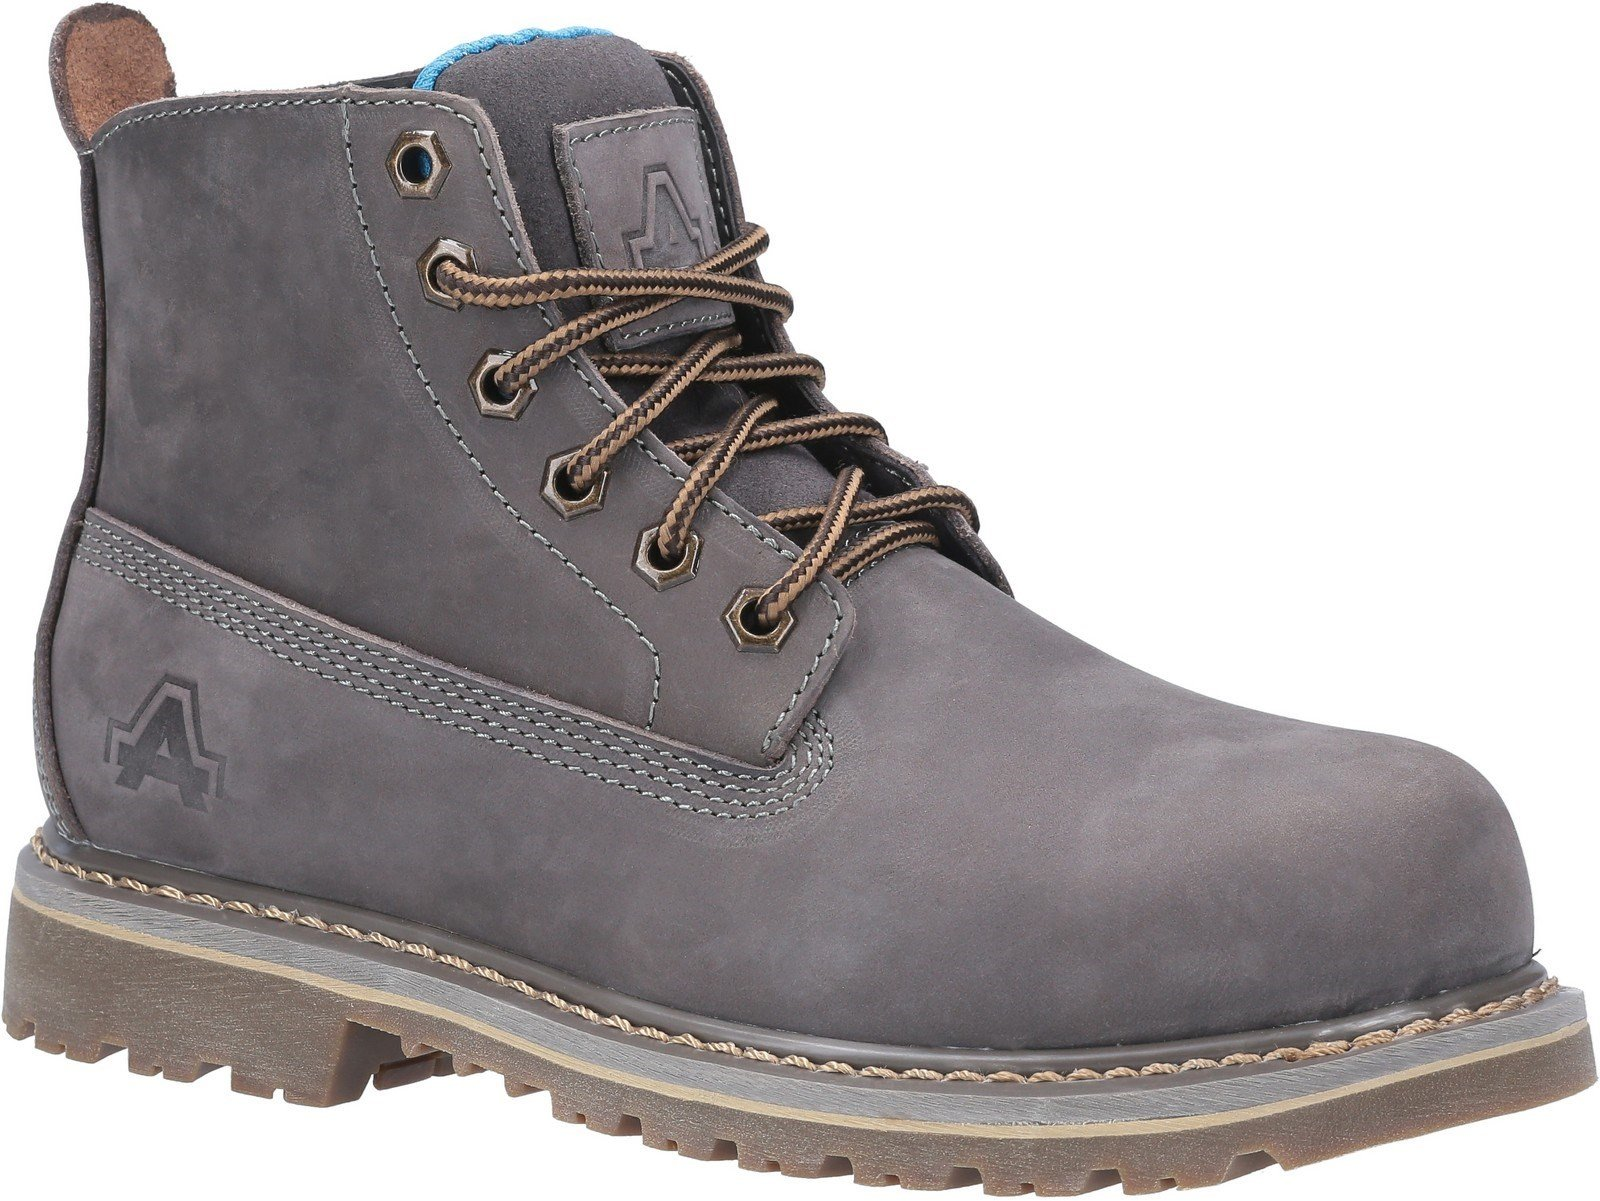 Amblers Women's Safety Mimi Lace Up Safety Boot Brown 29962 - Grey 3